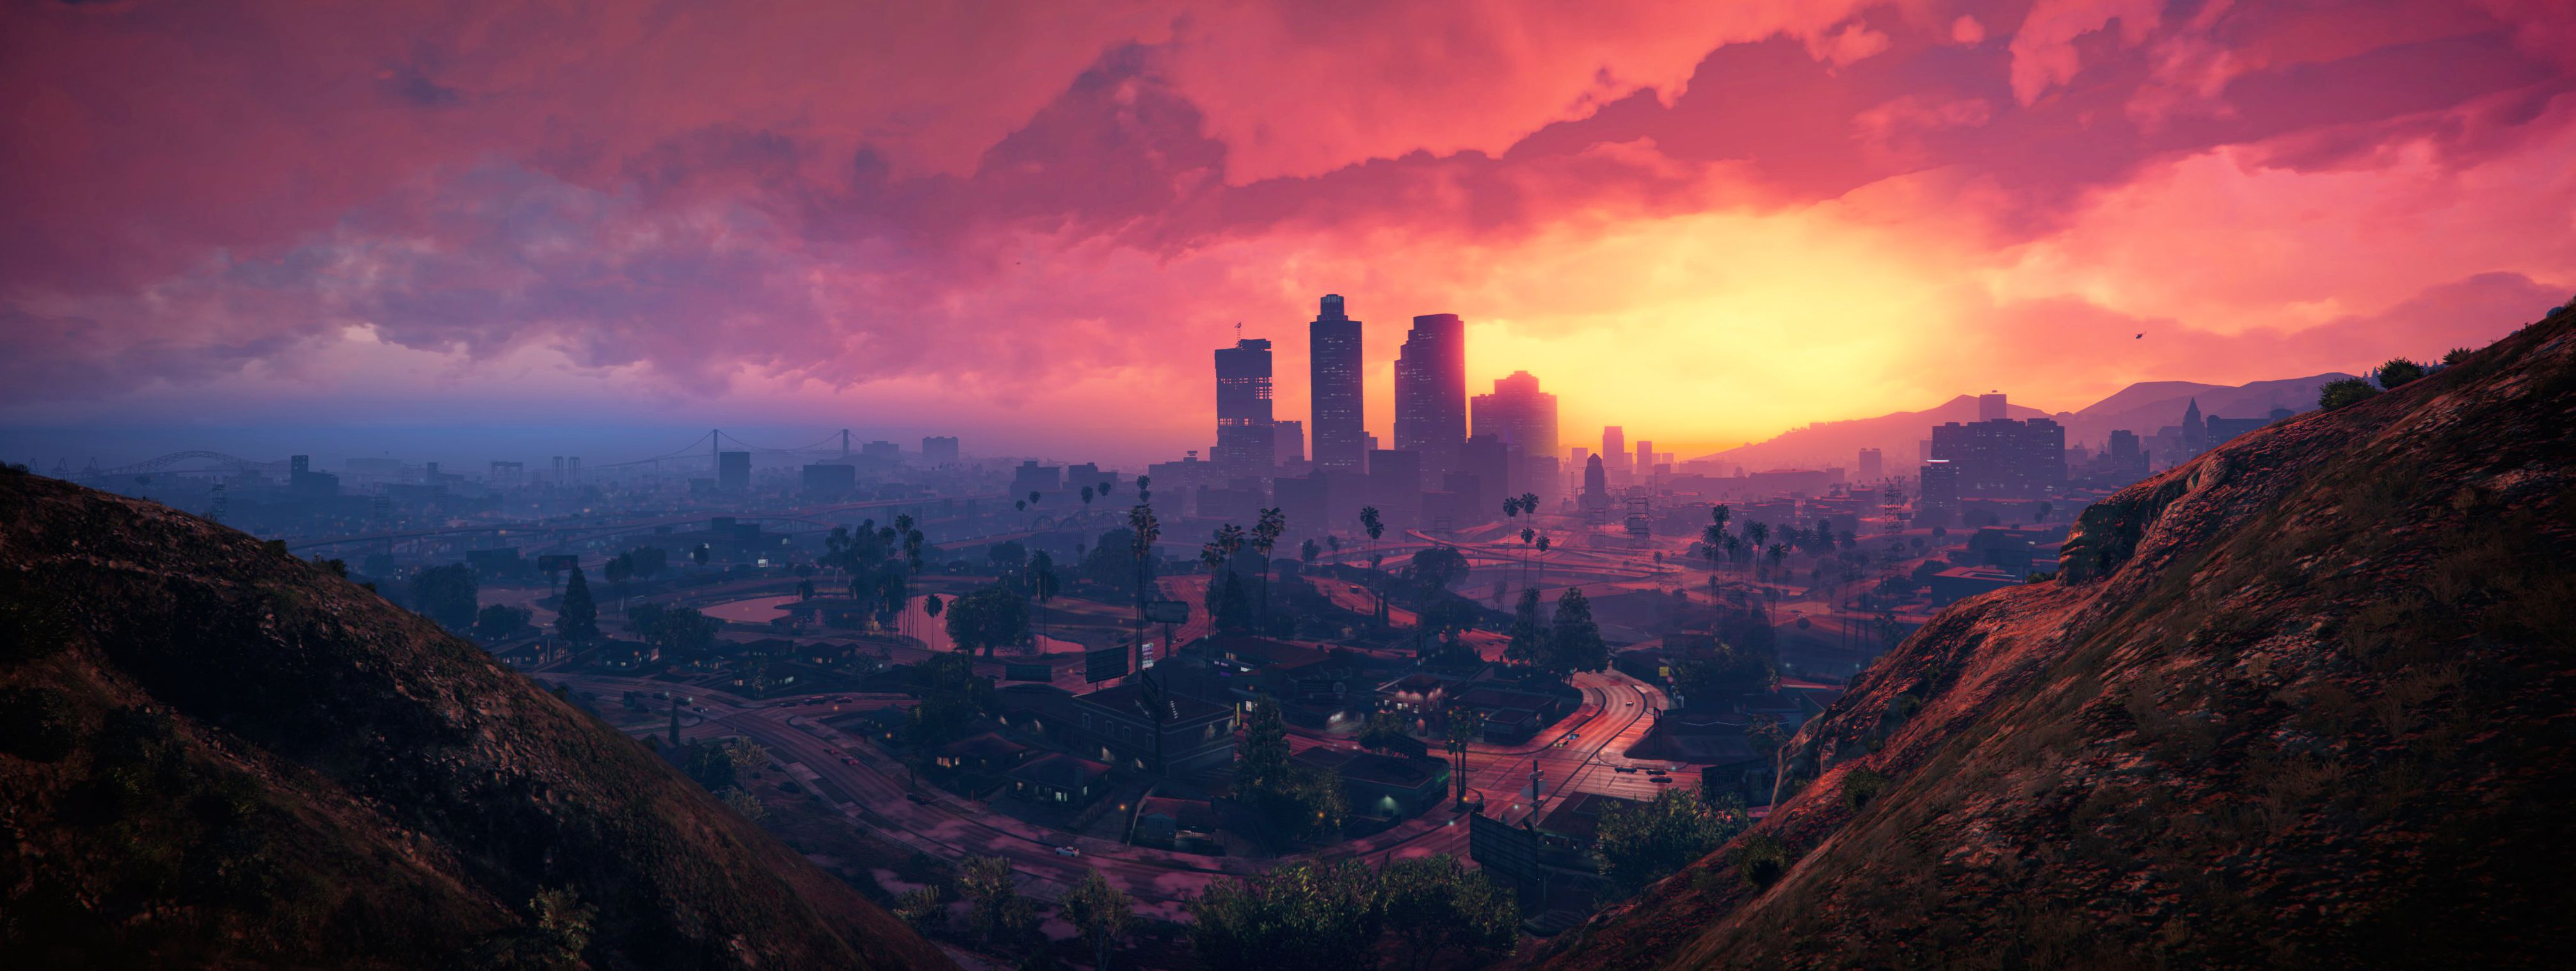 4k gta 5 wallpapers top free 4k gta 5 backgrounds - Gta v wallpaper ...